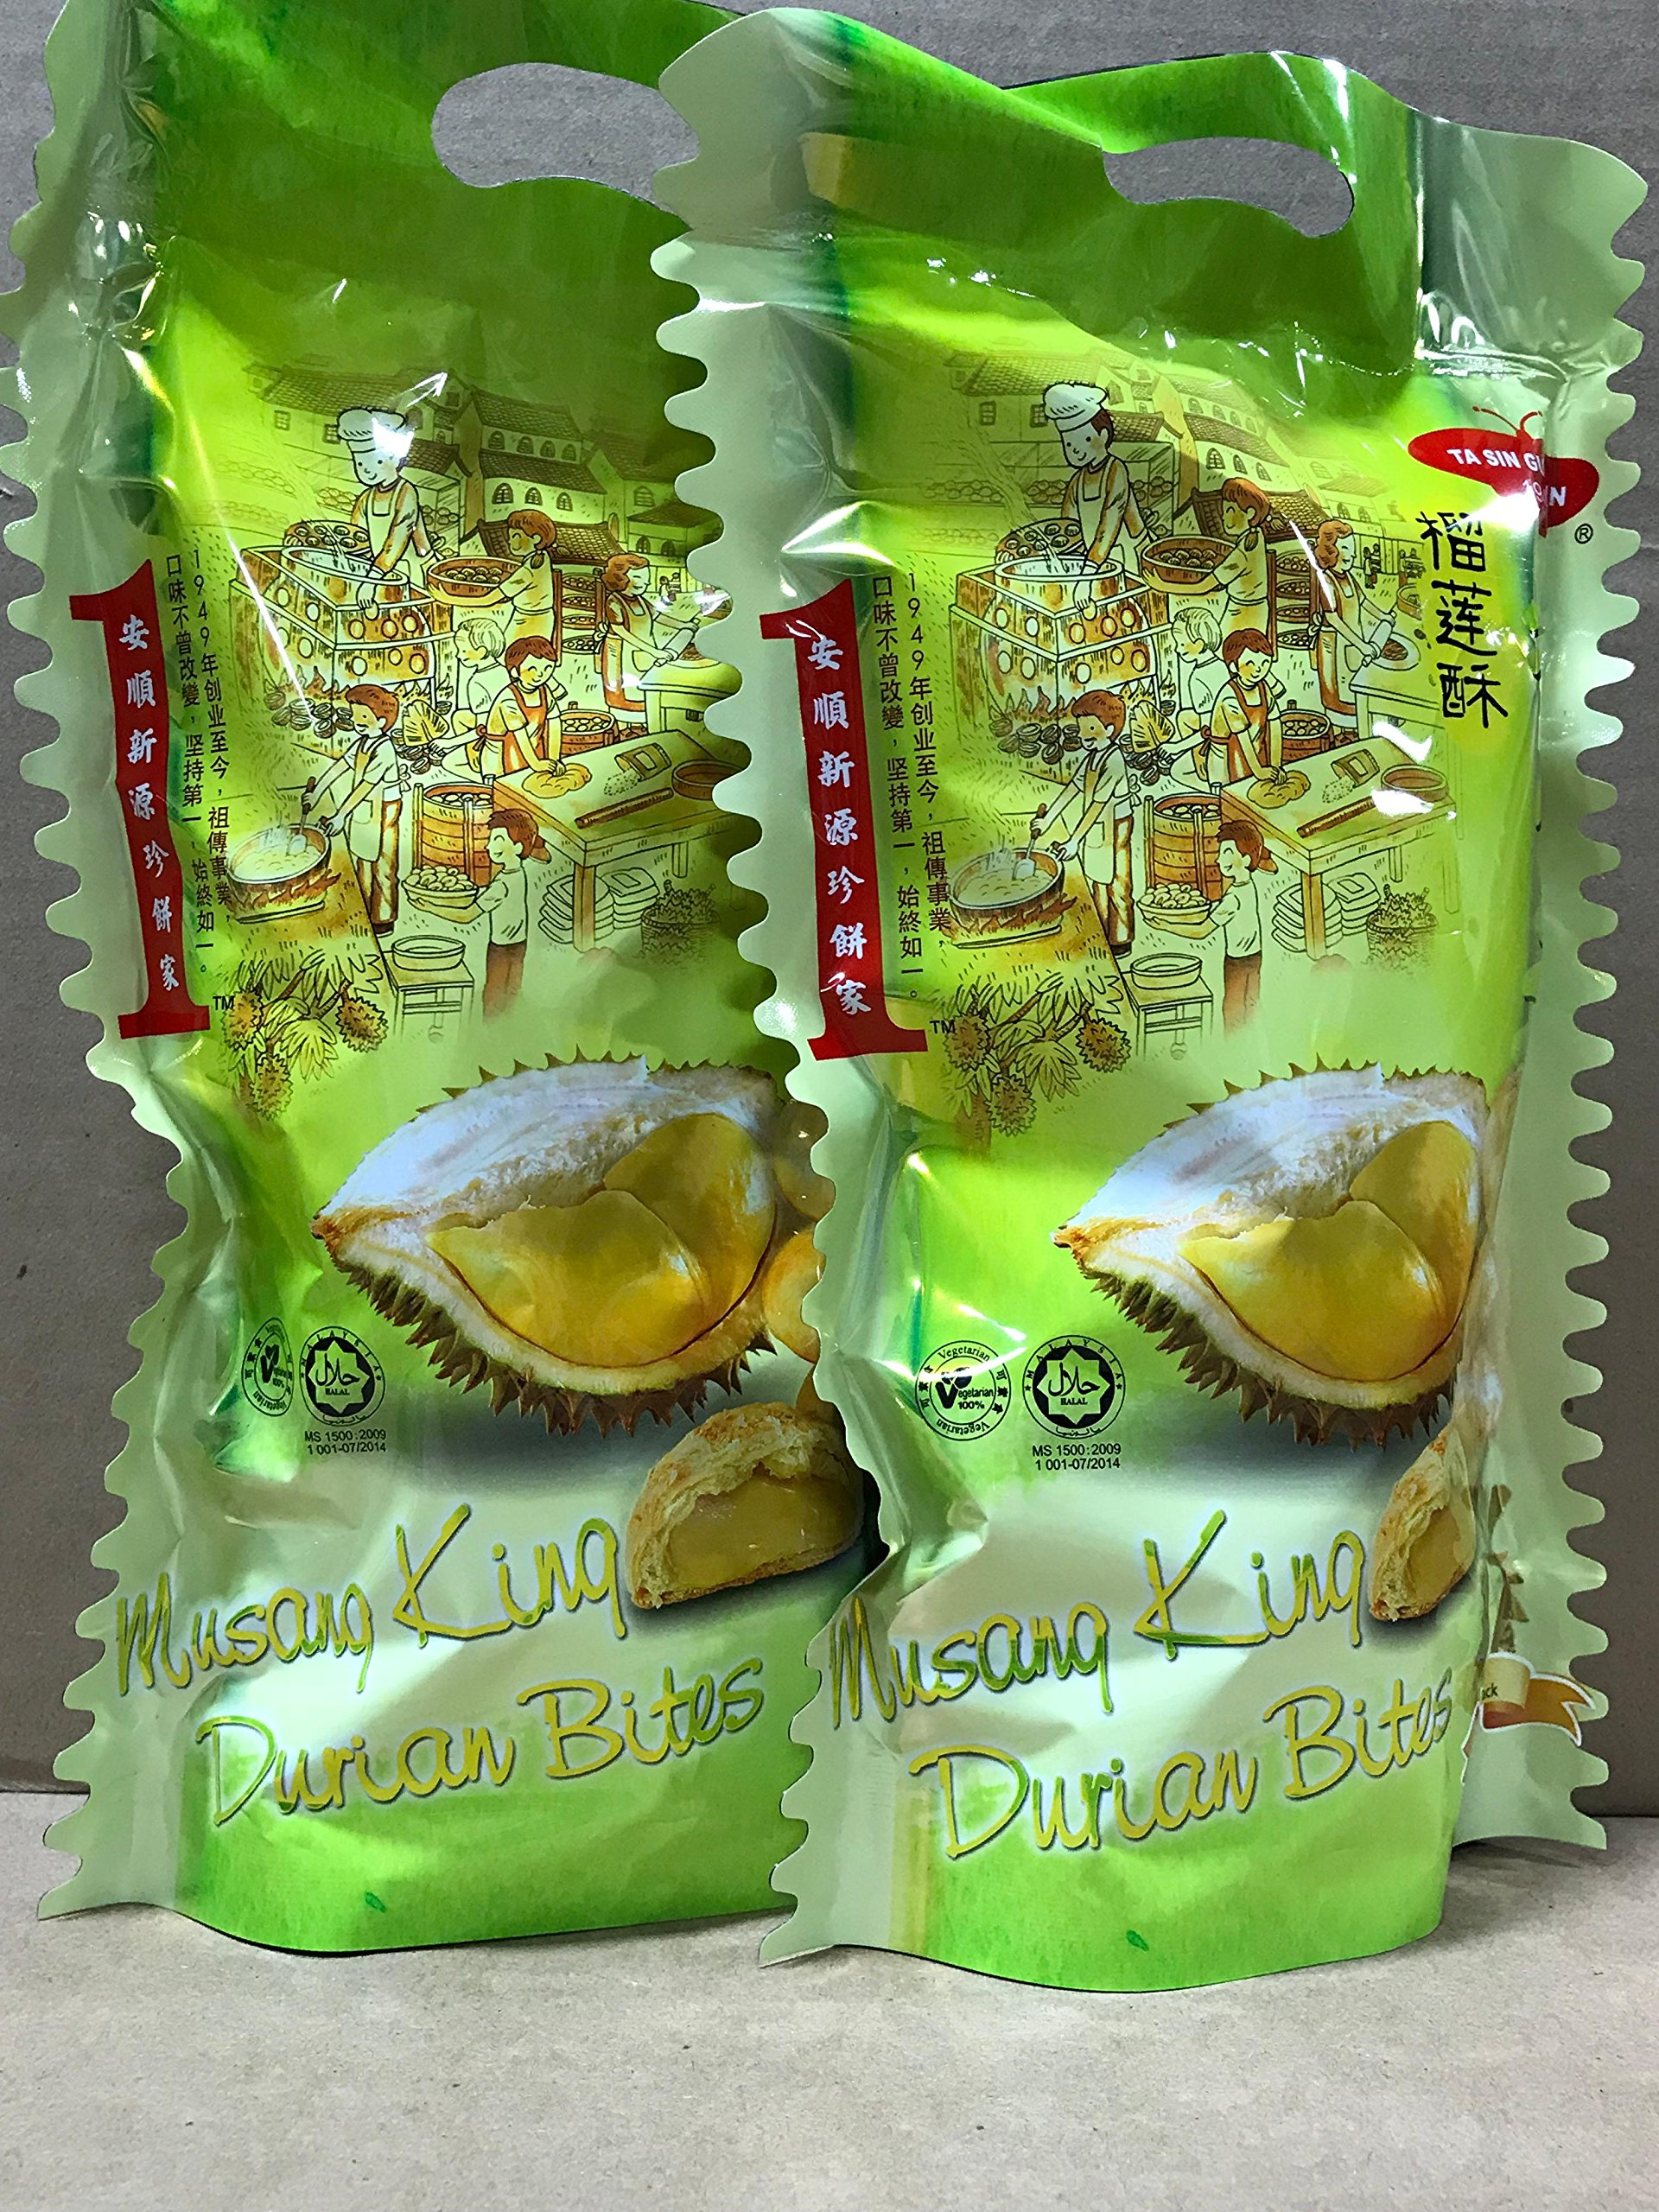 KC Commerce MUSANG KING Durian Bites 6 pcs/ bag Pack of 2